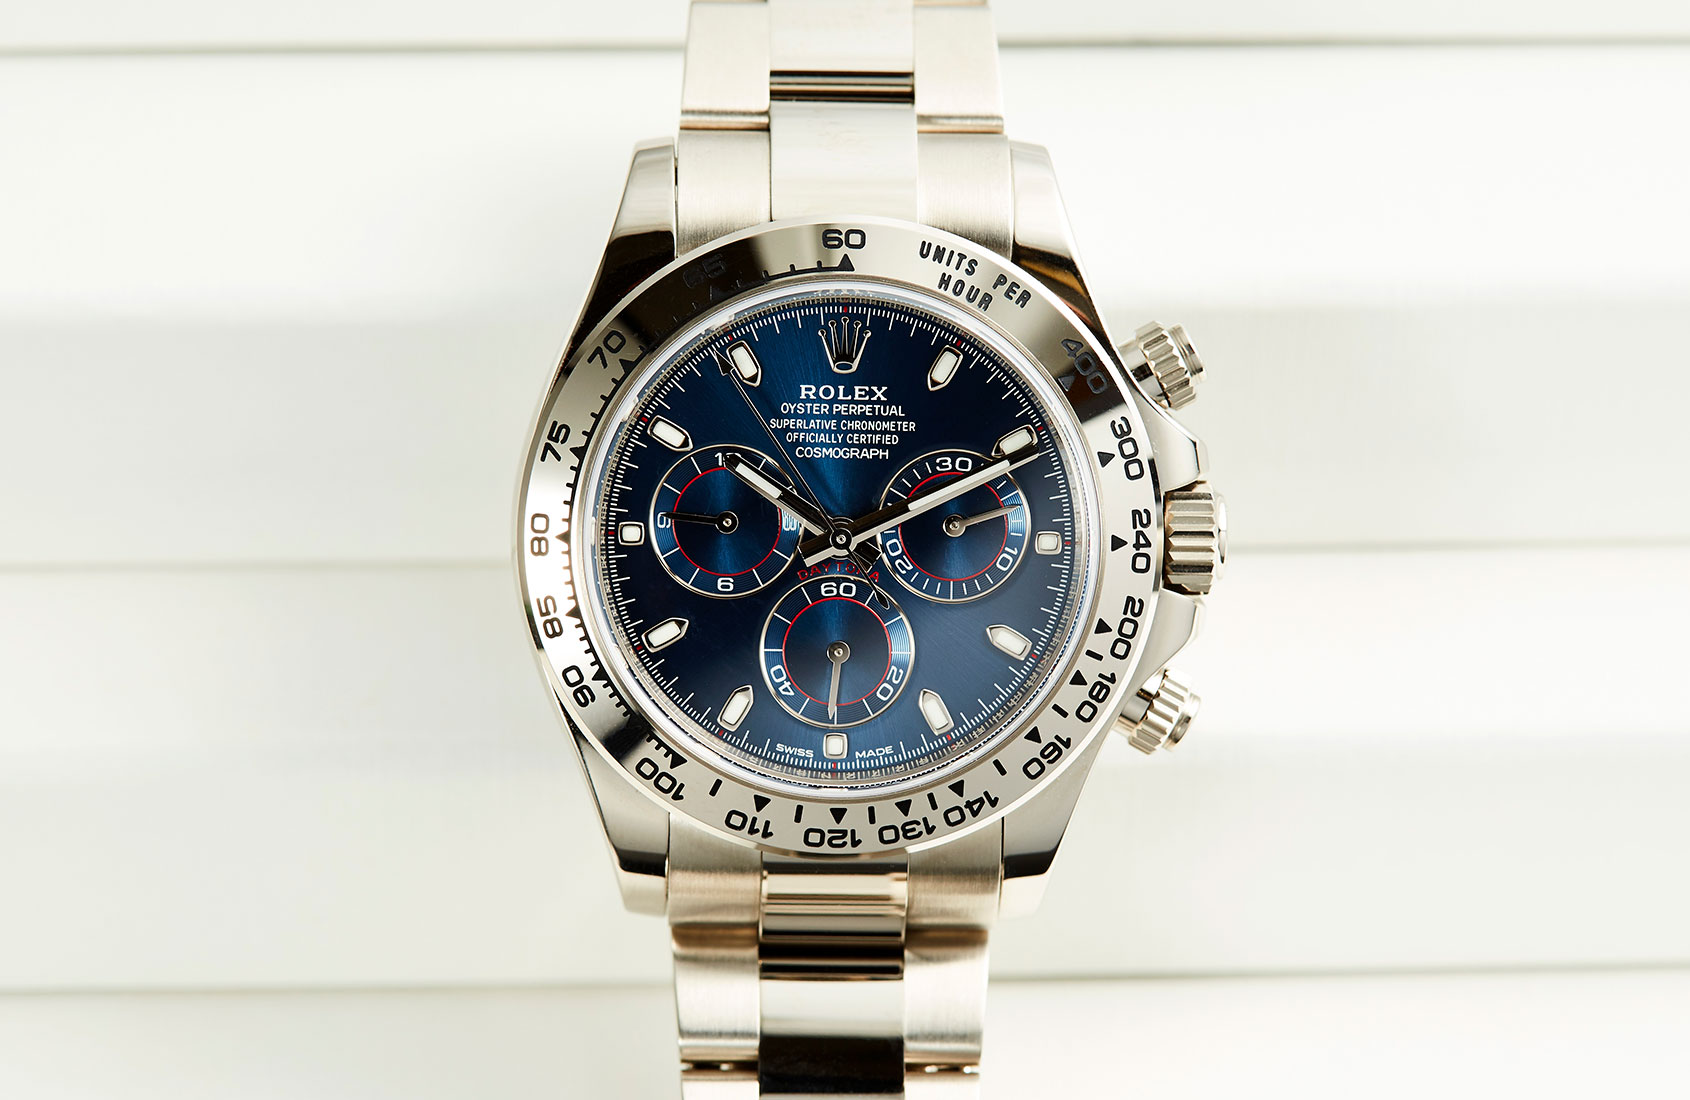 Hands on blue heaven the rolex daytona in white gold with blue dial ref 116509 plus pics for Rolex cosmograph daytona